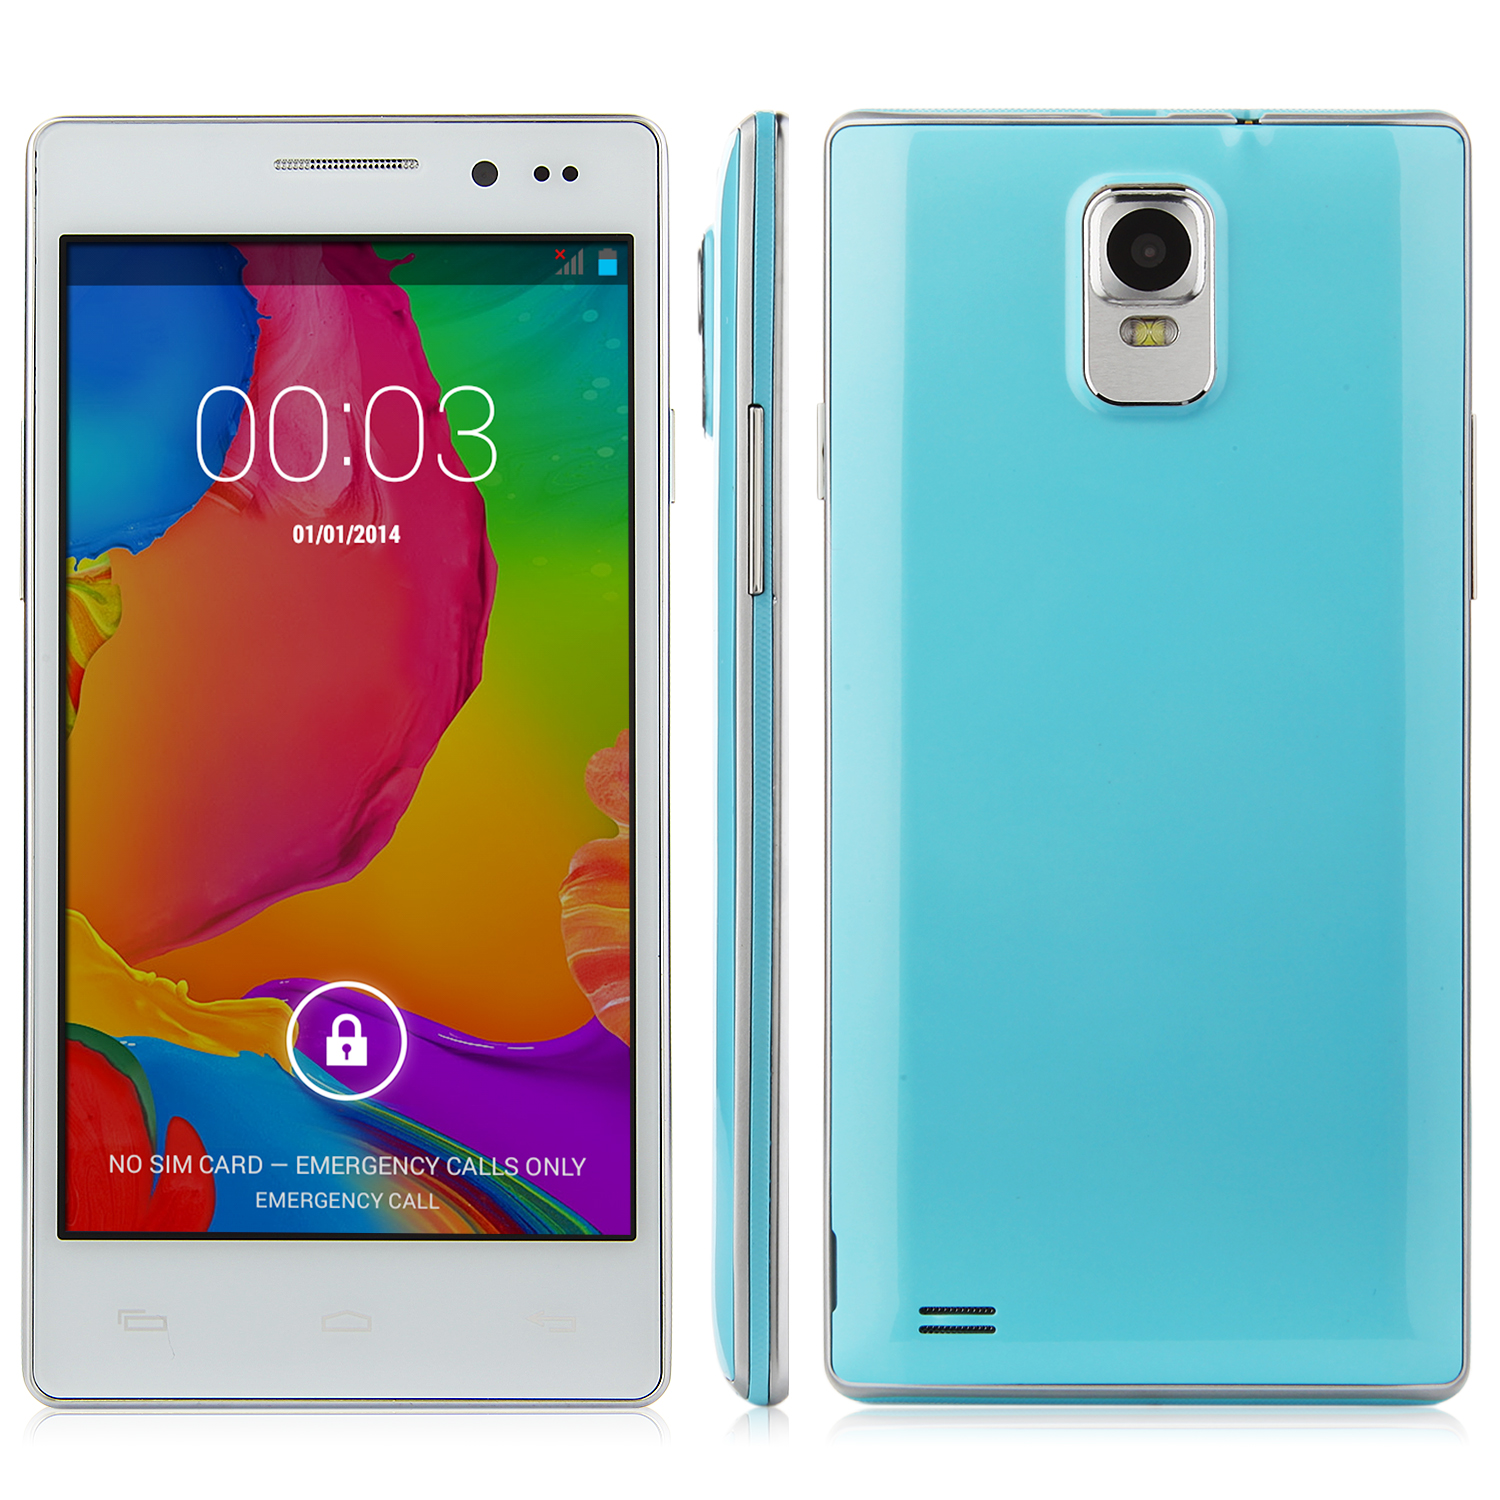 N908 Smartphone Android 4.4 MTK6572 Dual Core 5.0 Inch Screen Smart Wake Blue